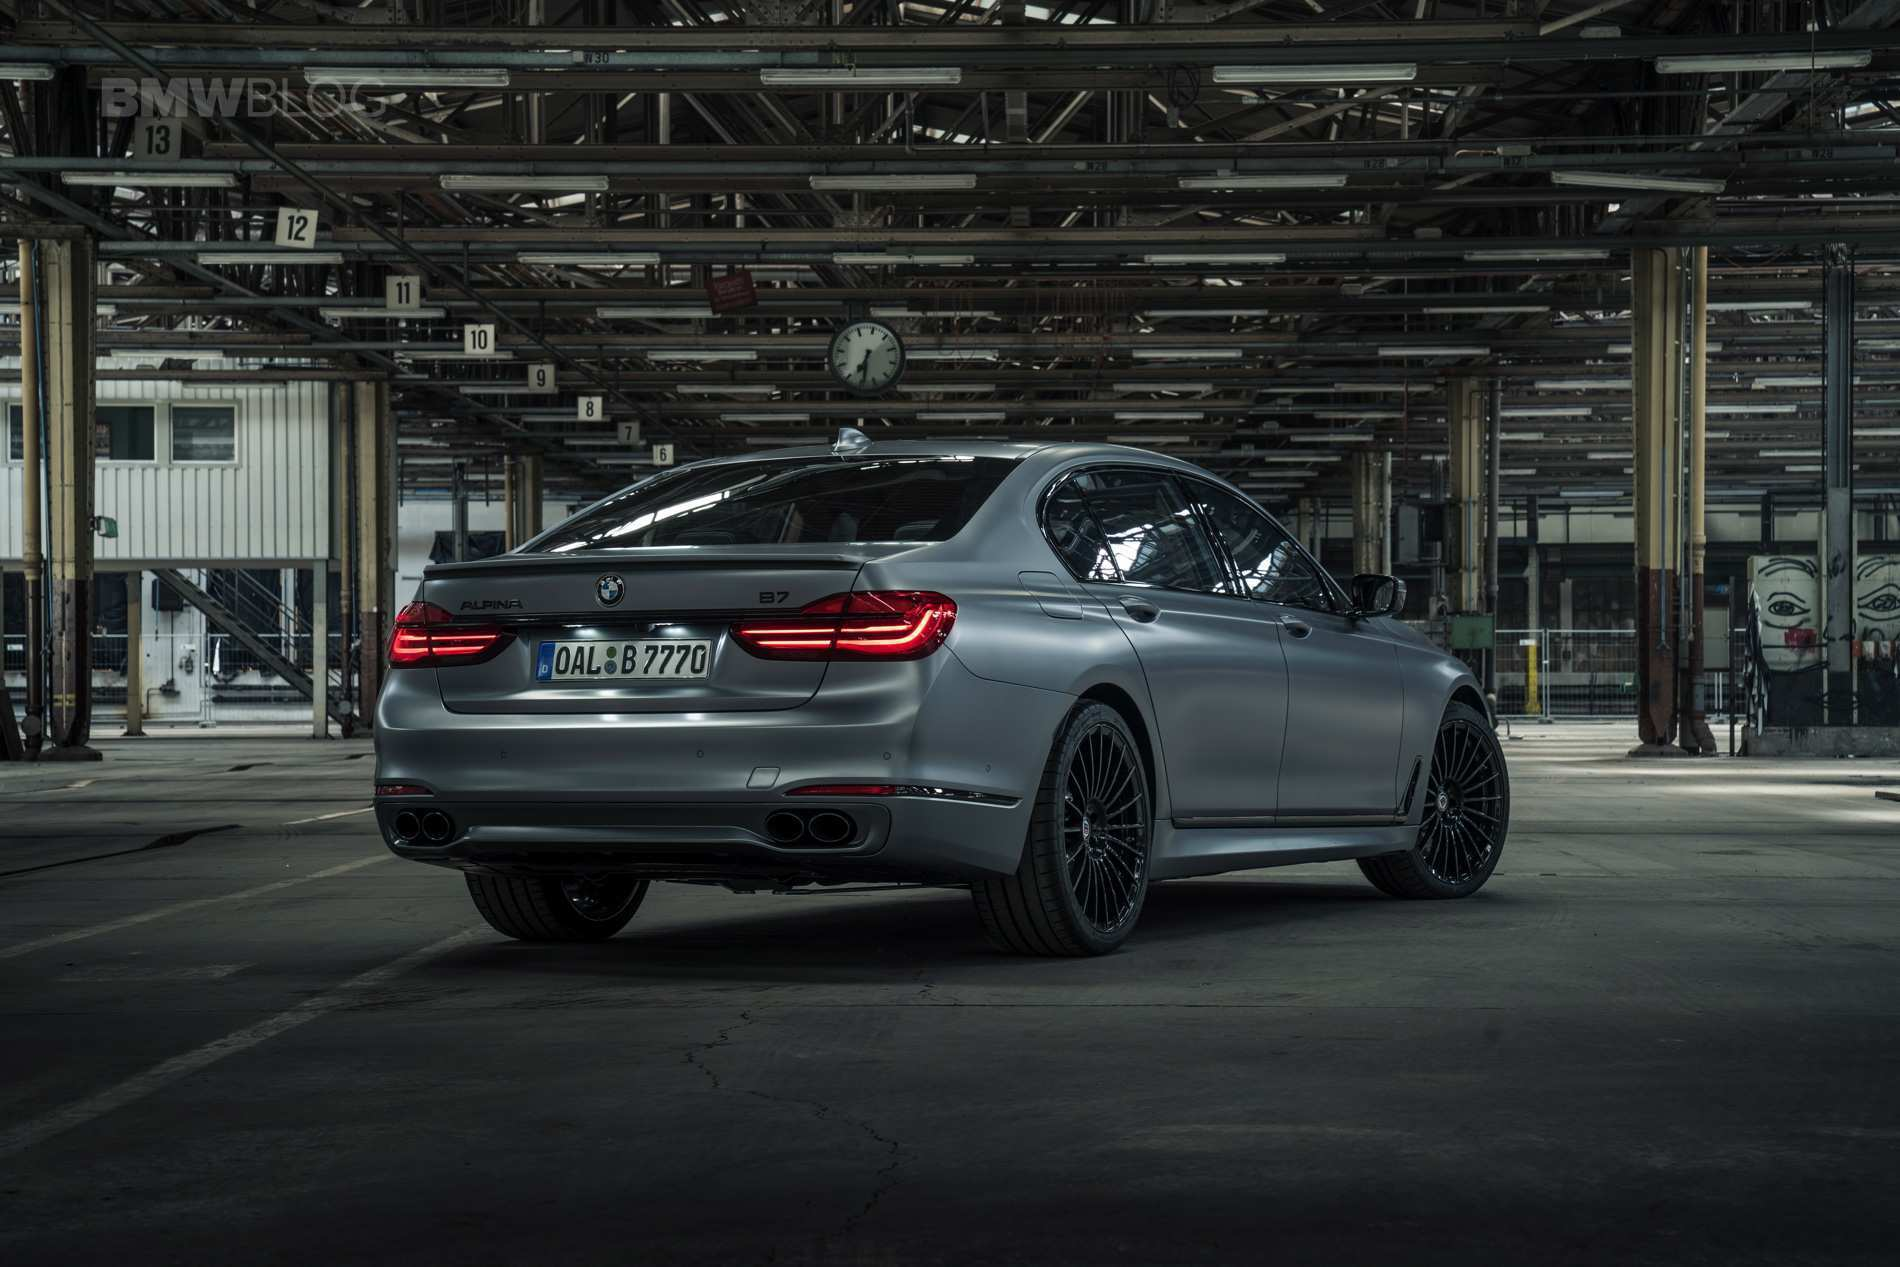 53 All New 2019 Bmw Alpina B7 For Sale Picture for 2019 Bmw Alpina B7 For Sale